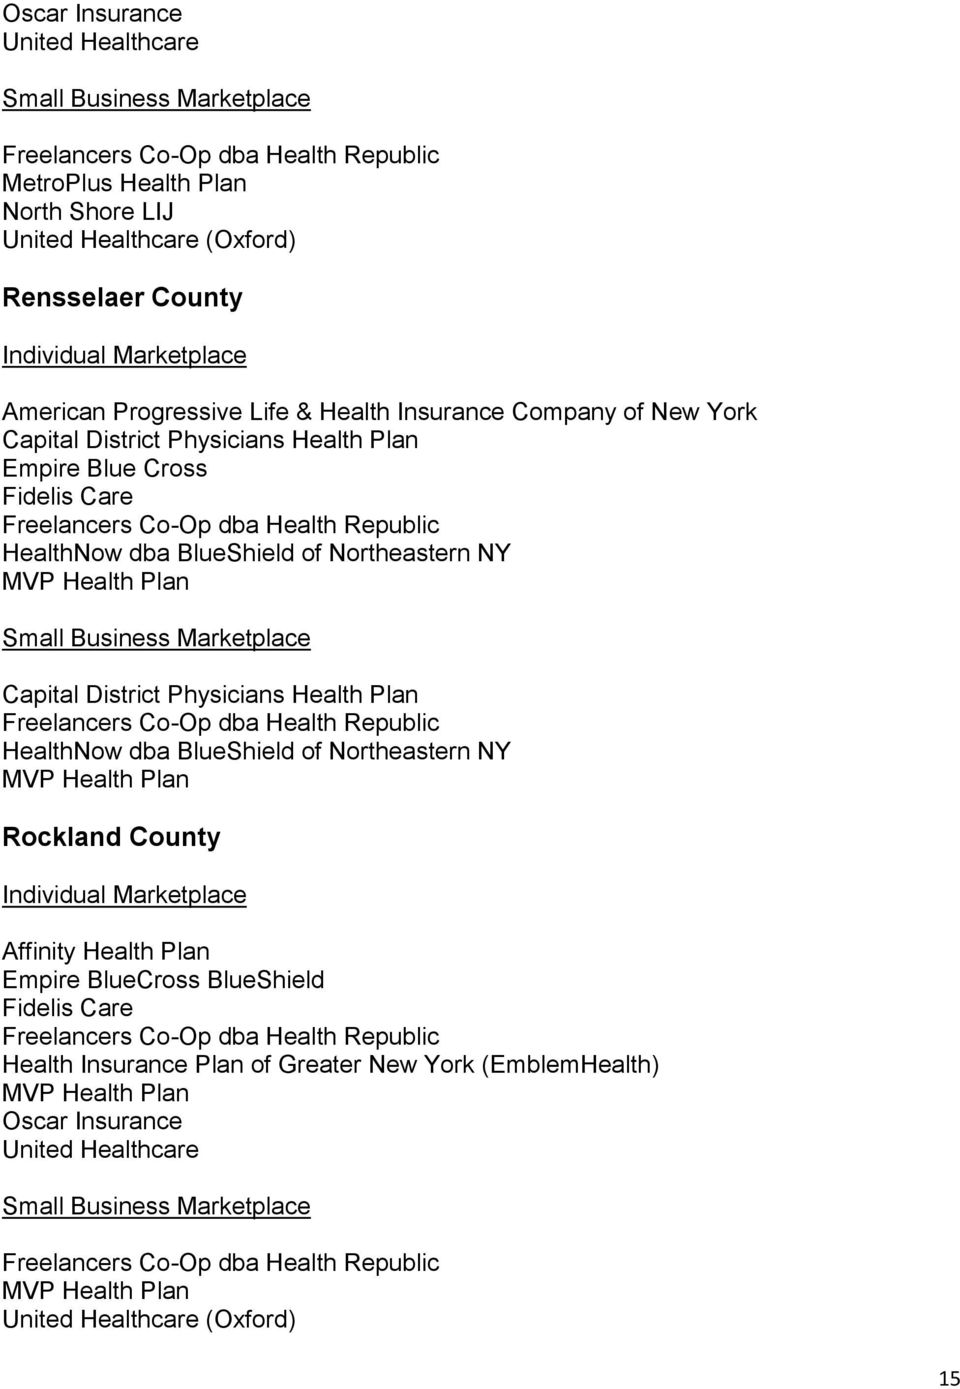 County Affinity Health Plan Health Insurance Plan